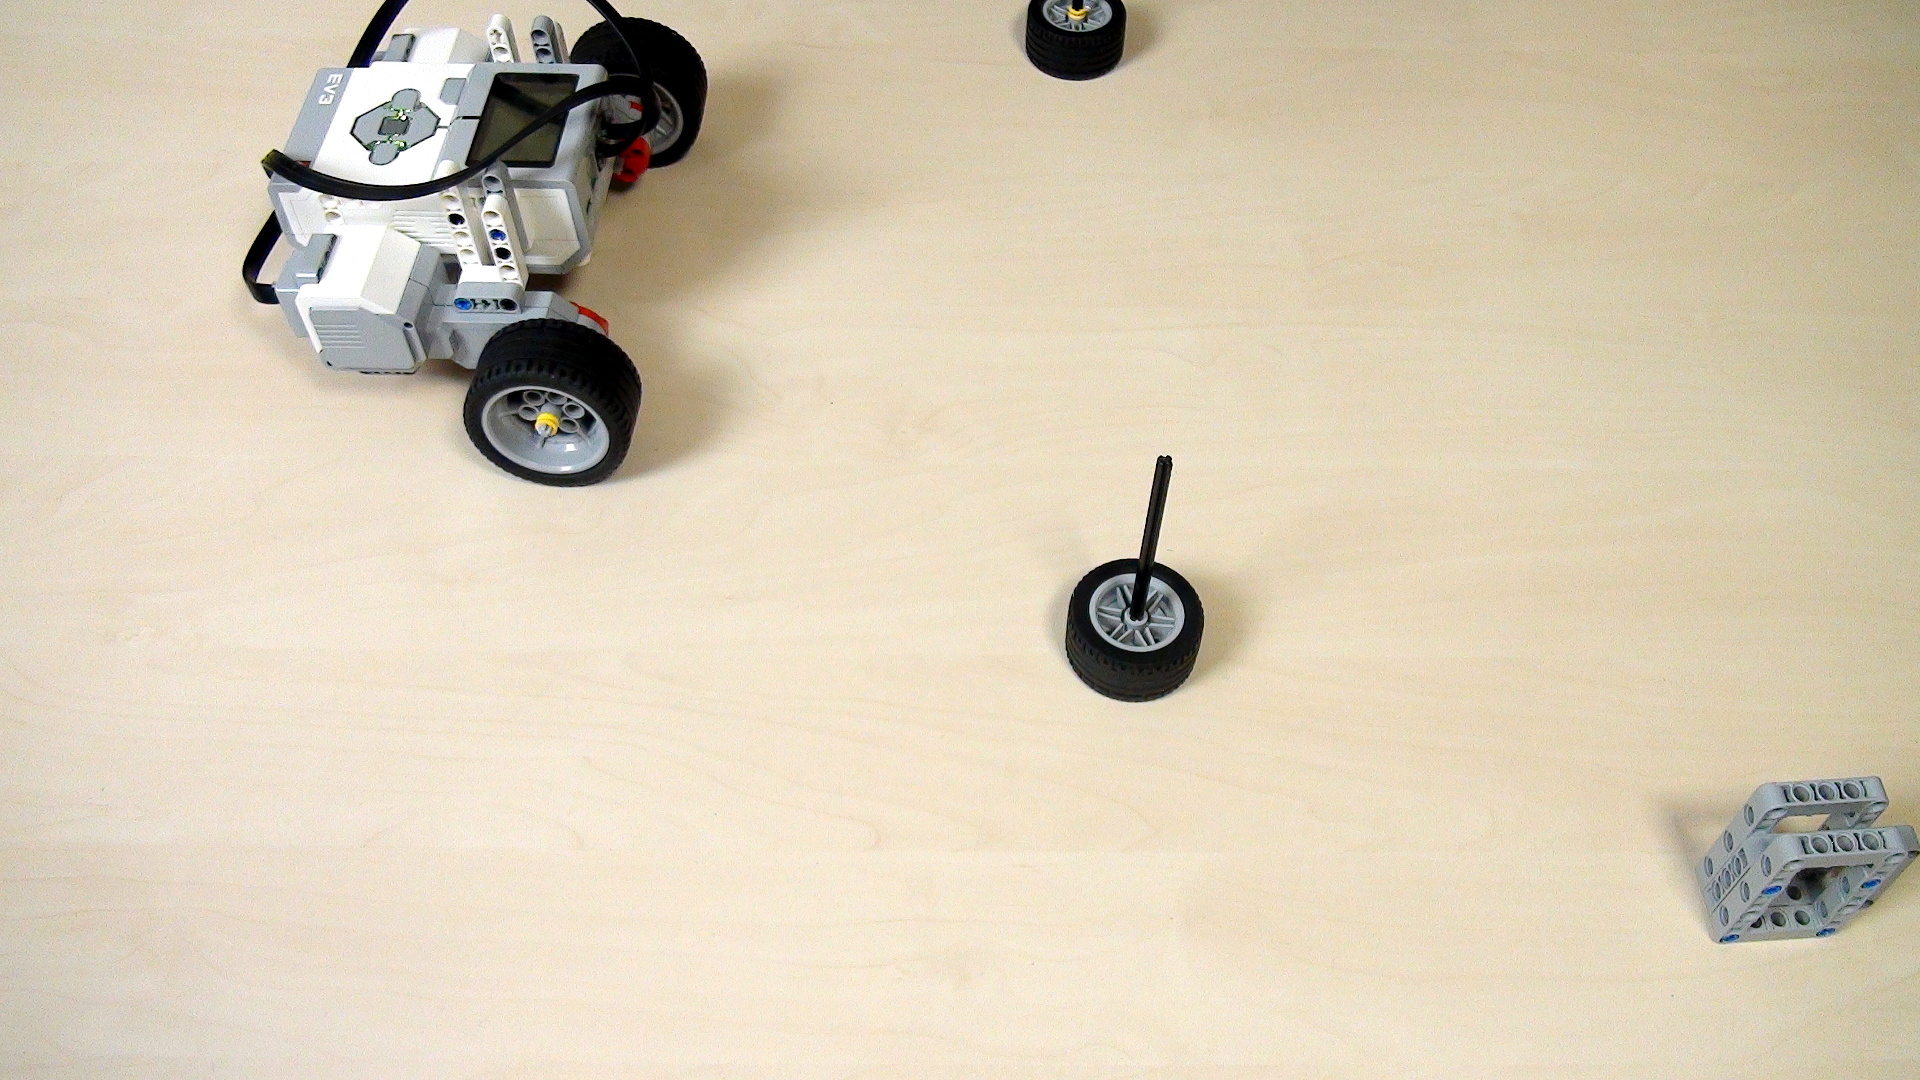 FLLCasts | 90-degree turn with LEGO Mindstorms robot